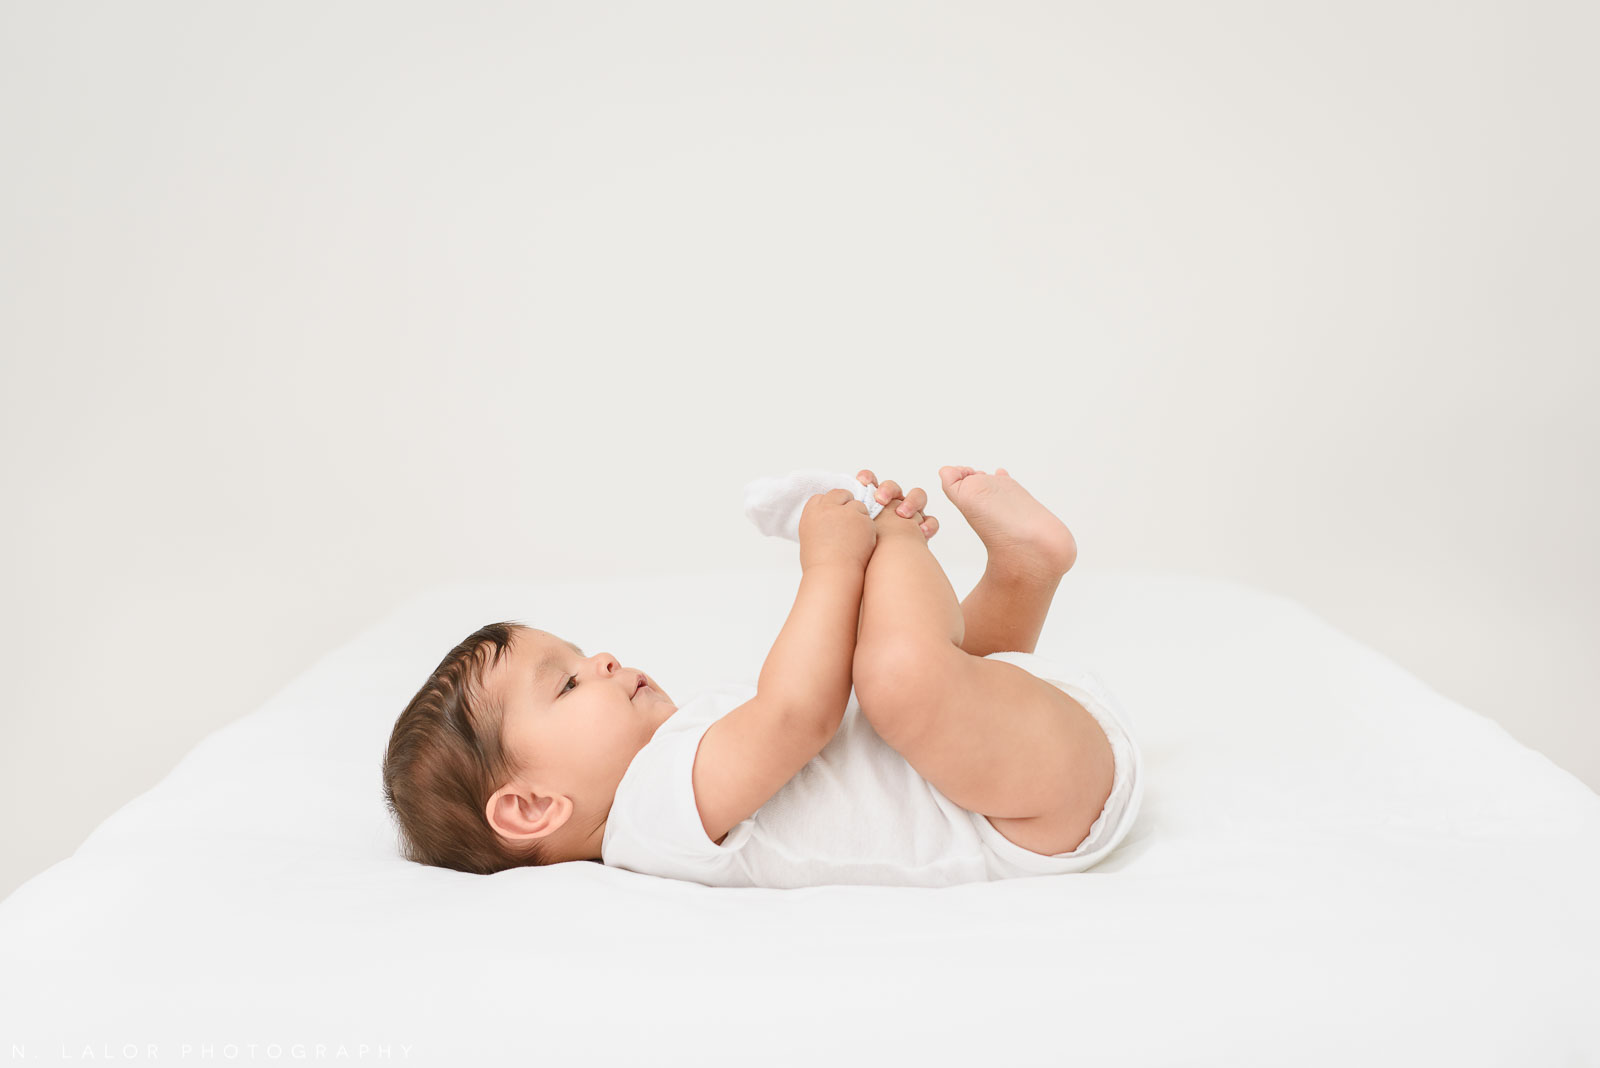 Photograph of a 3-month old baby in a simple and clean style. Studio portrait by N. Lalor Photography in Greenwich Connecticut.